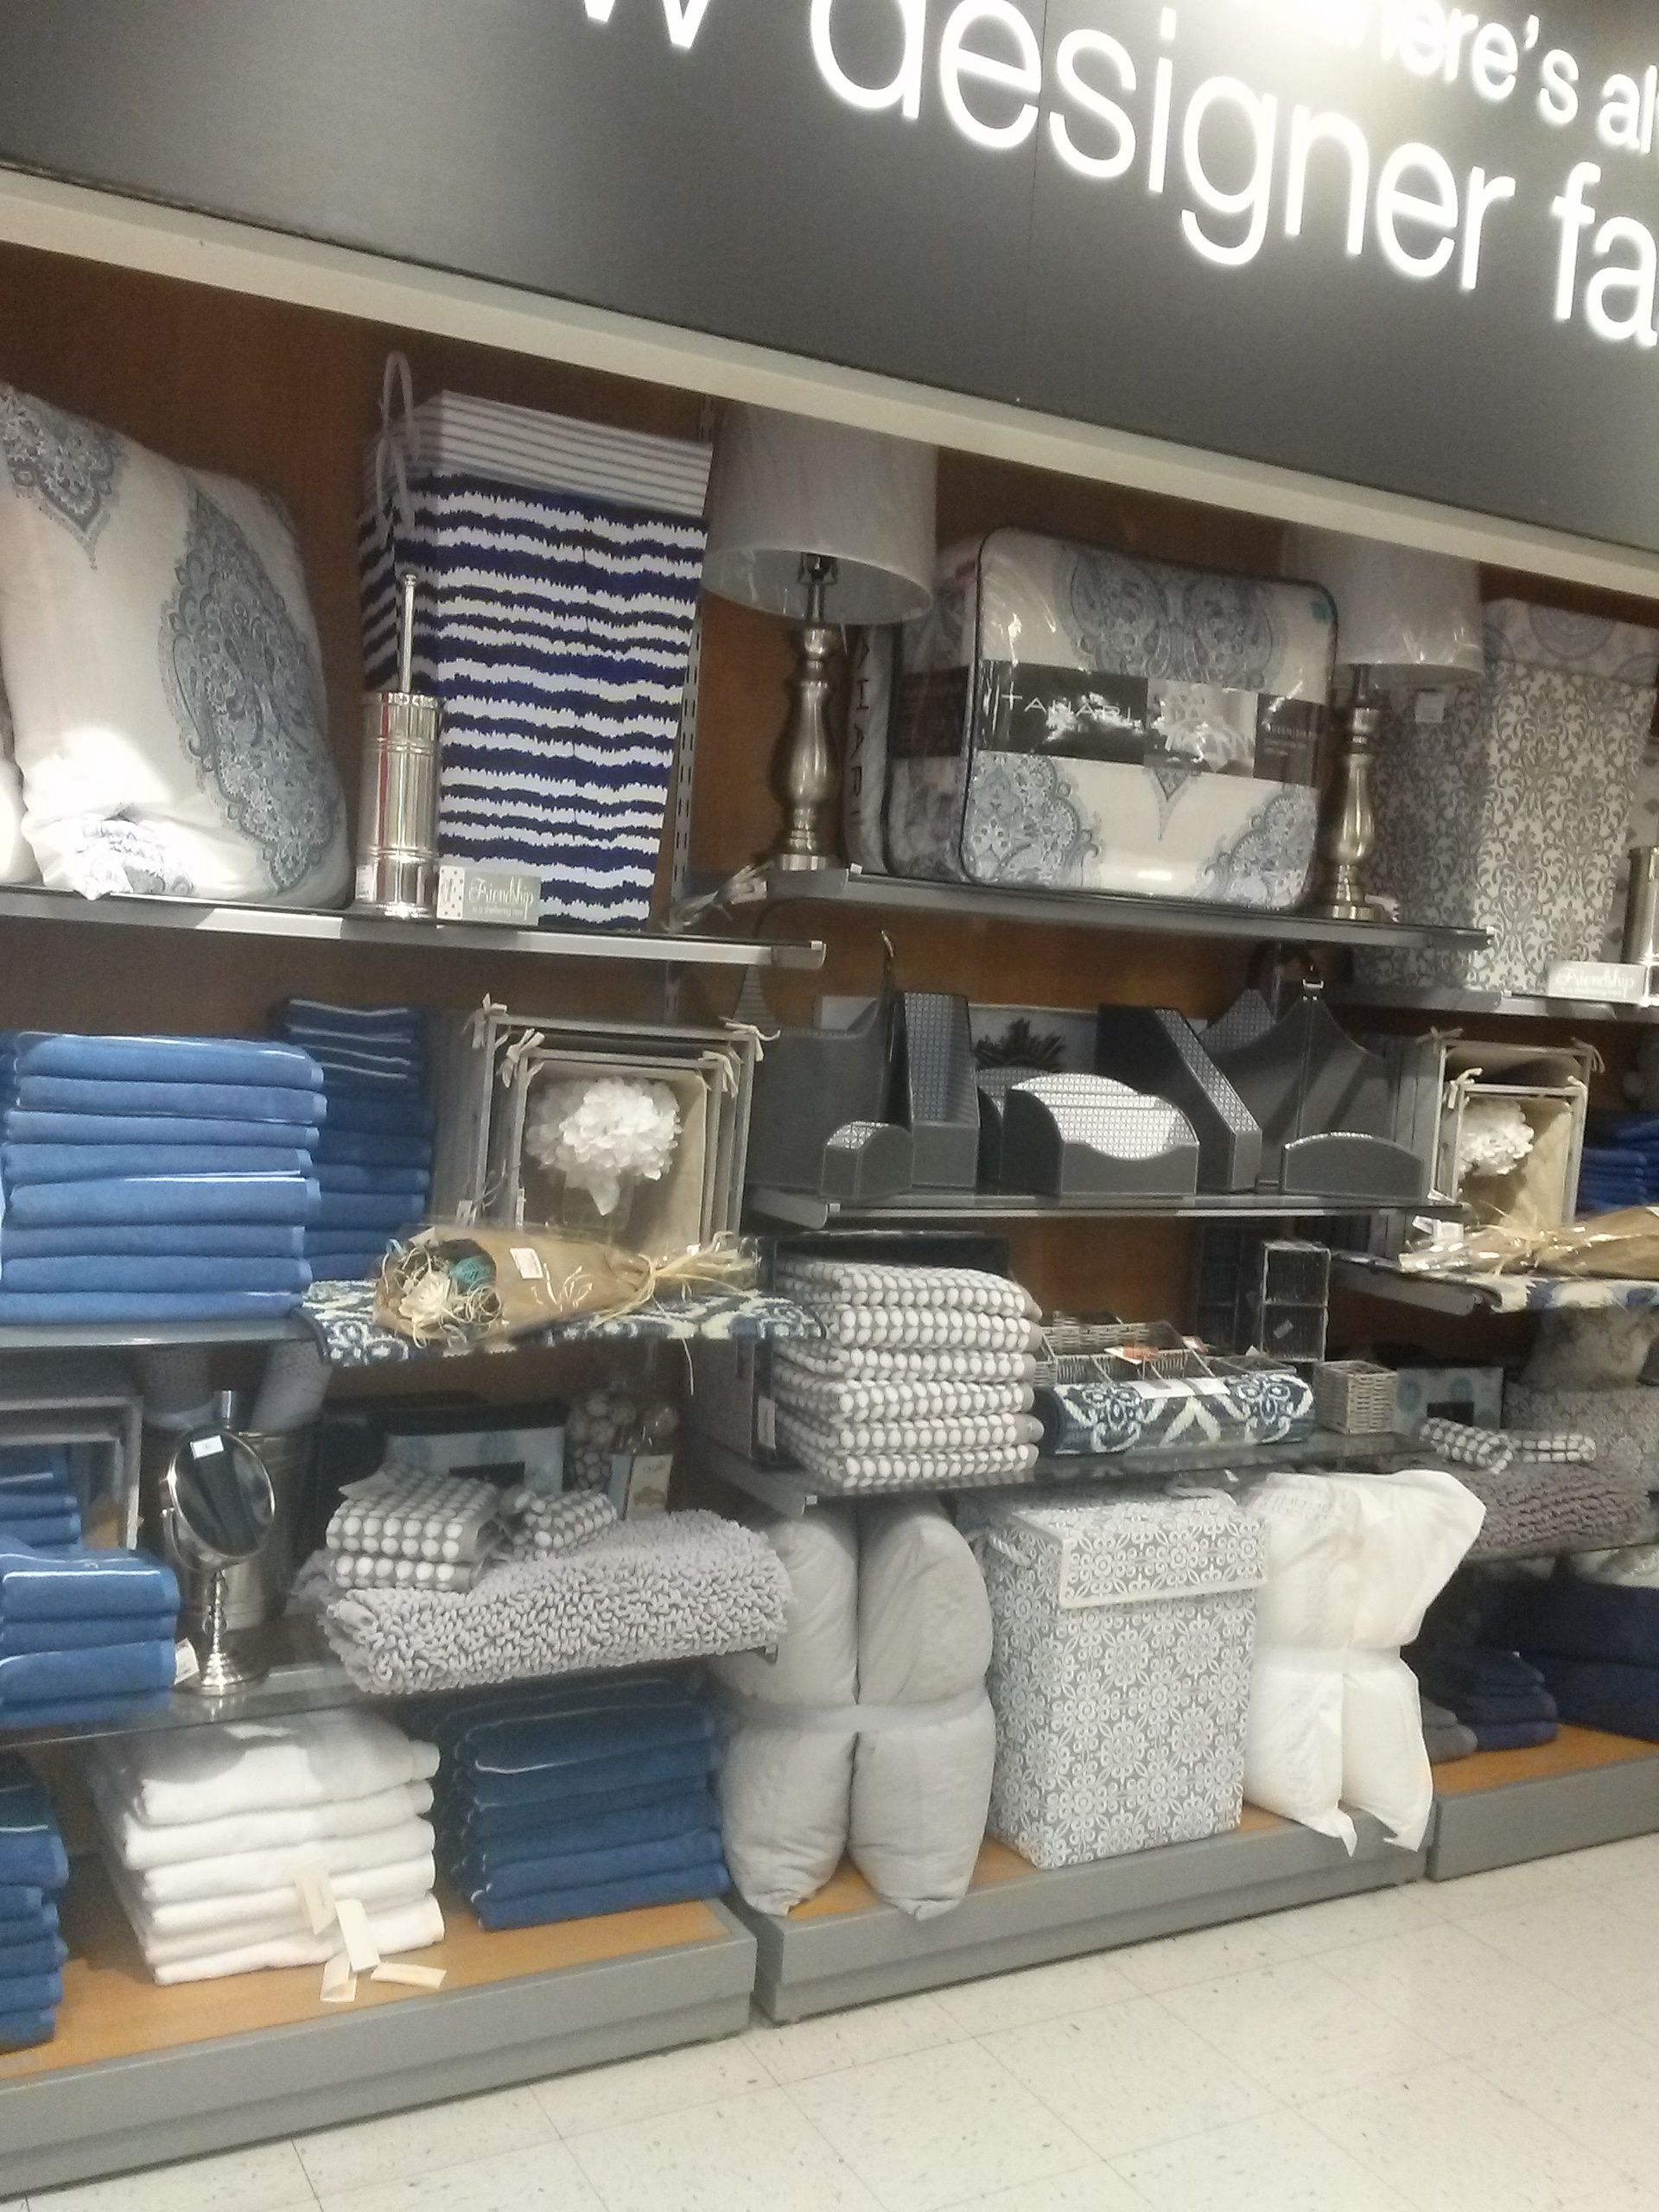 Bed And Bath Cove Retail Display Tj Maxx Topeka Bed Linen